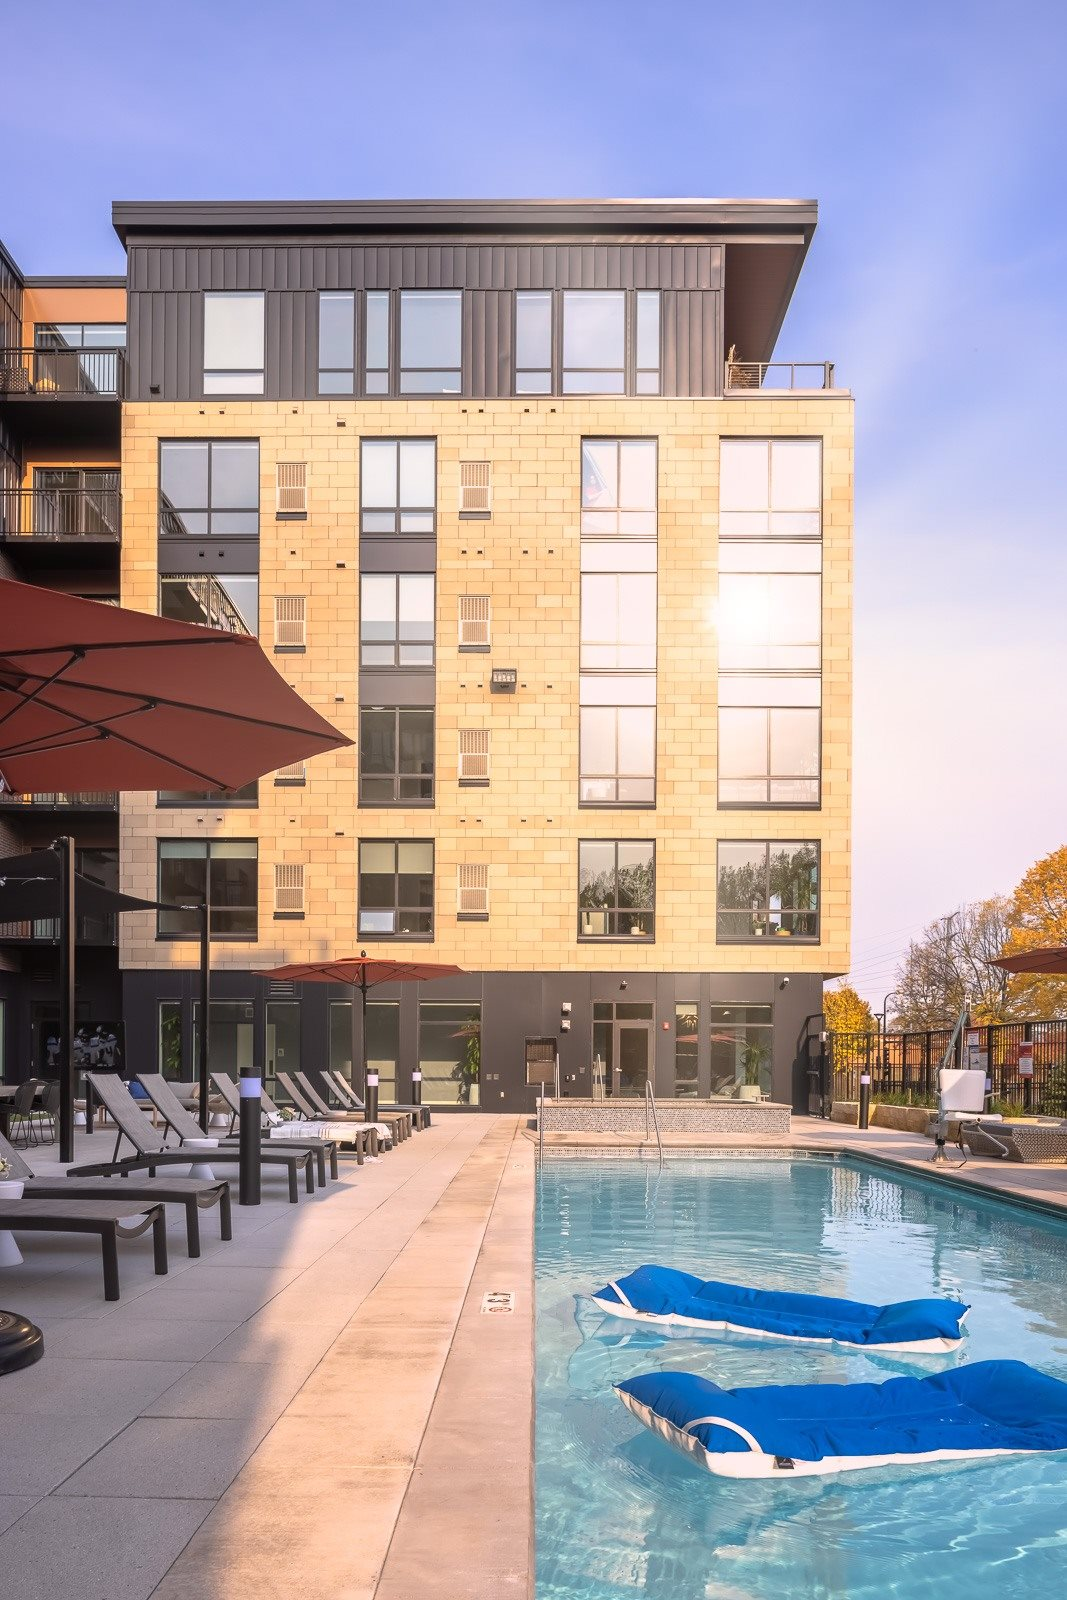 Outdoor heated pool on terrace with sunshine reflecting off windows